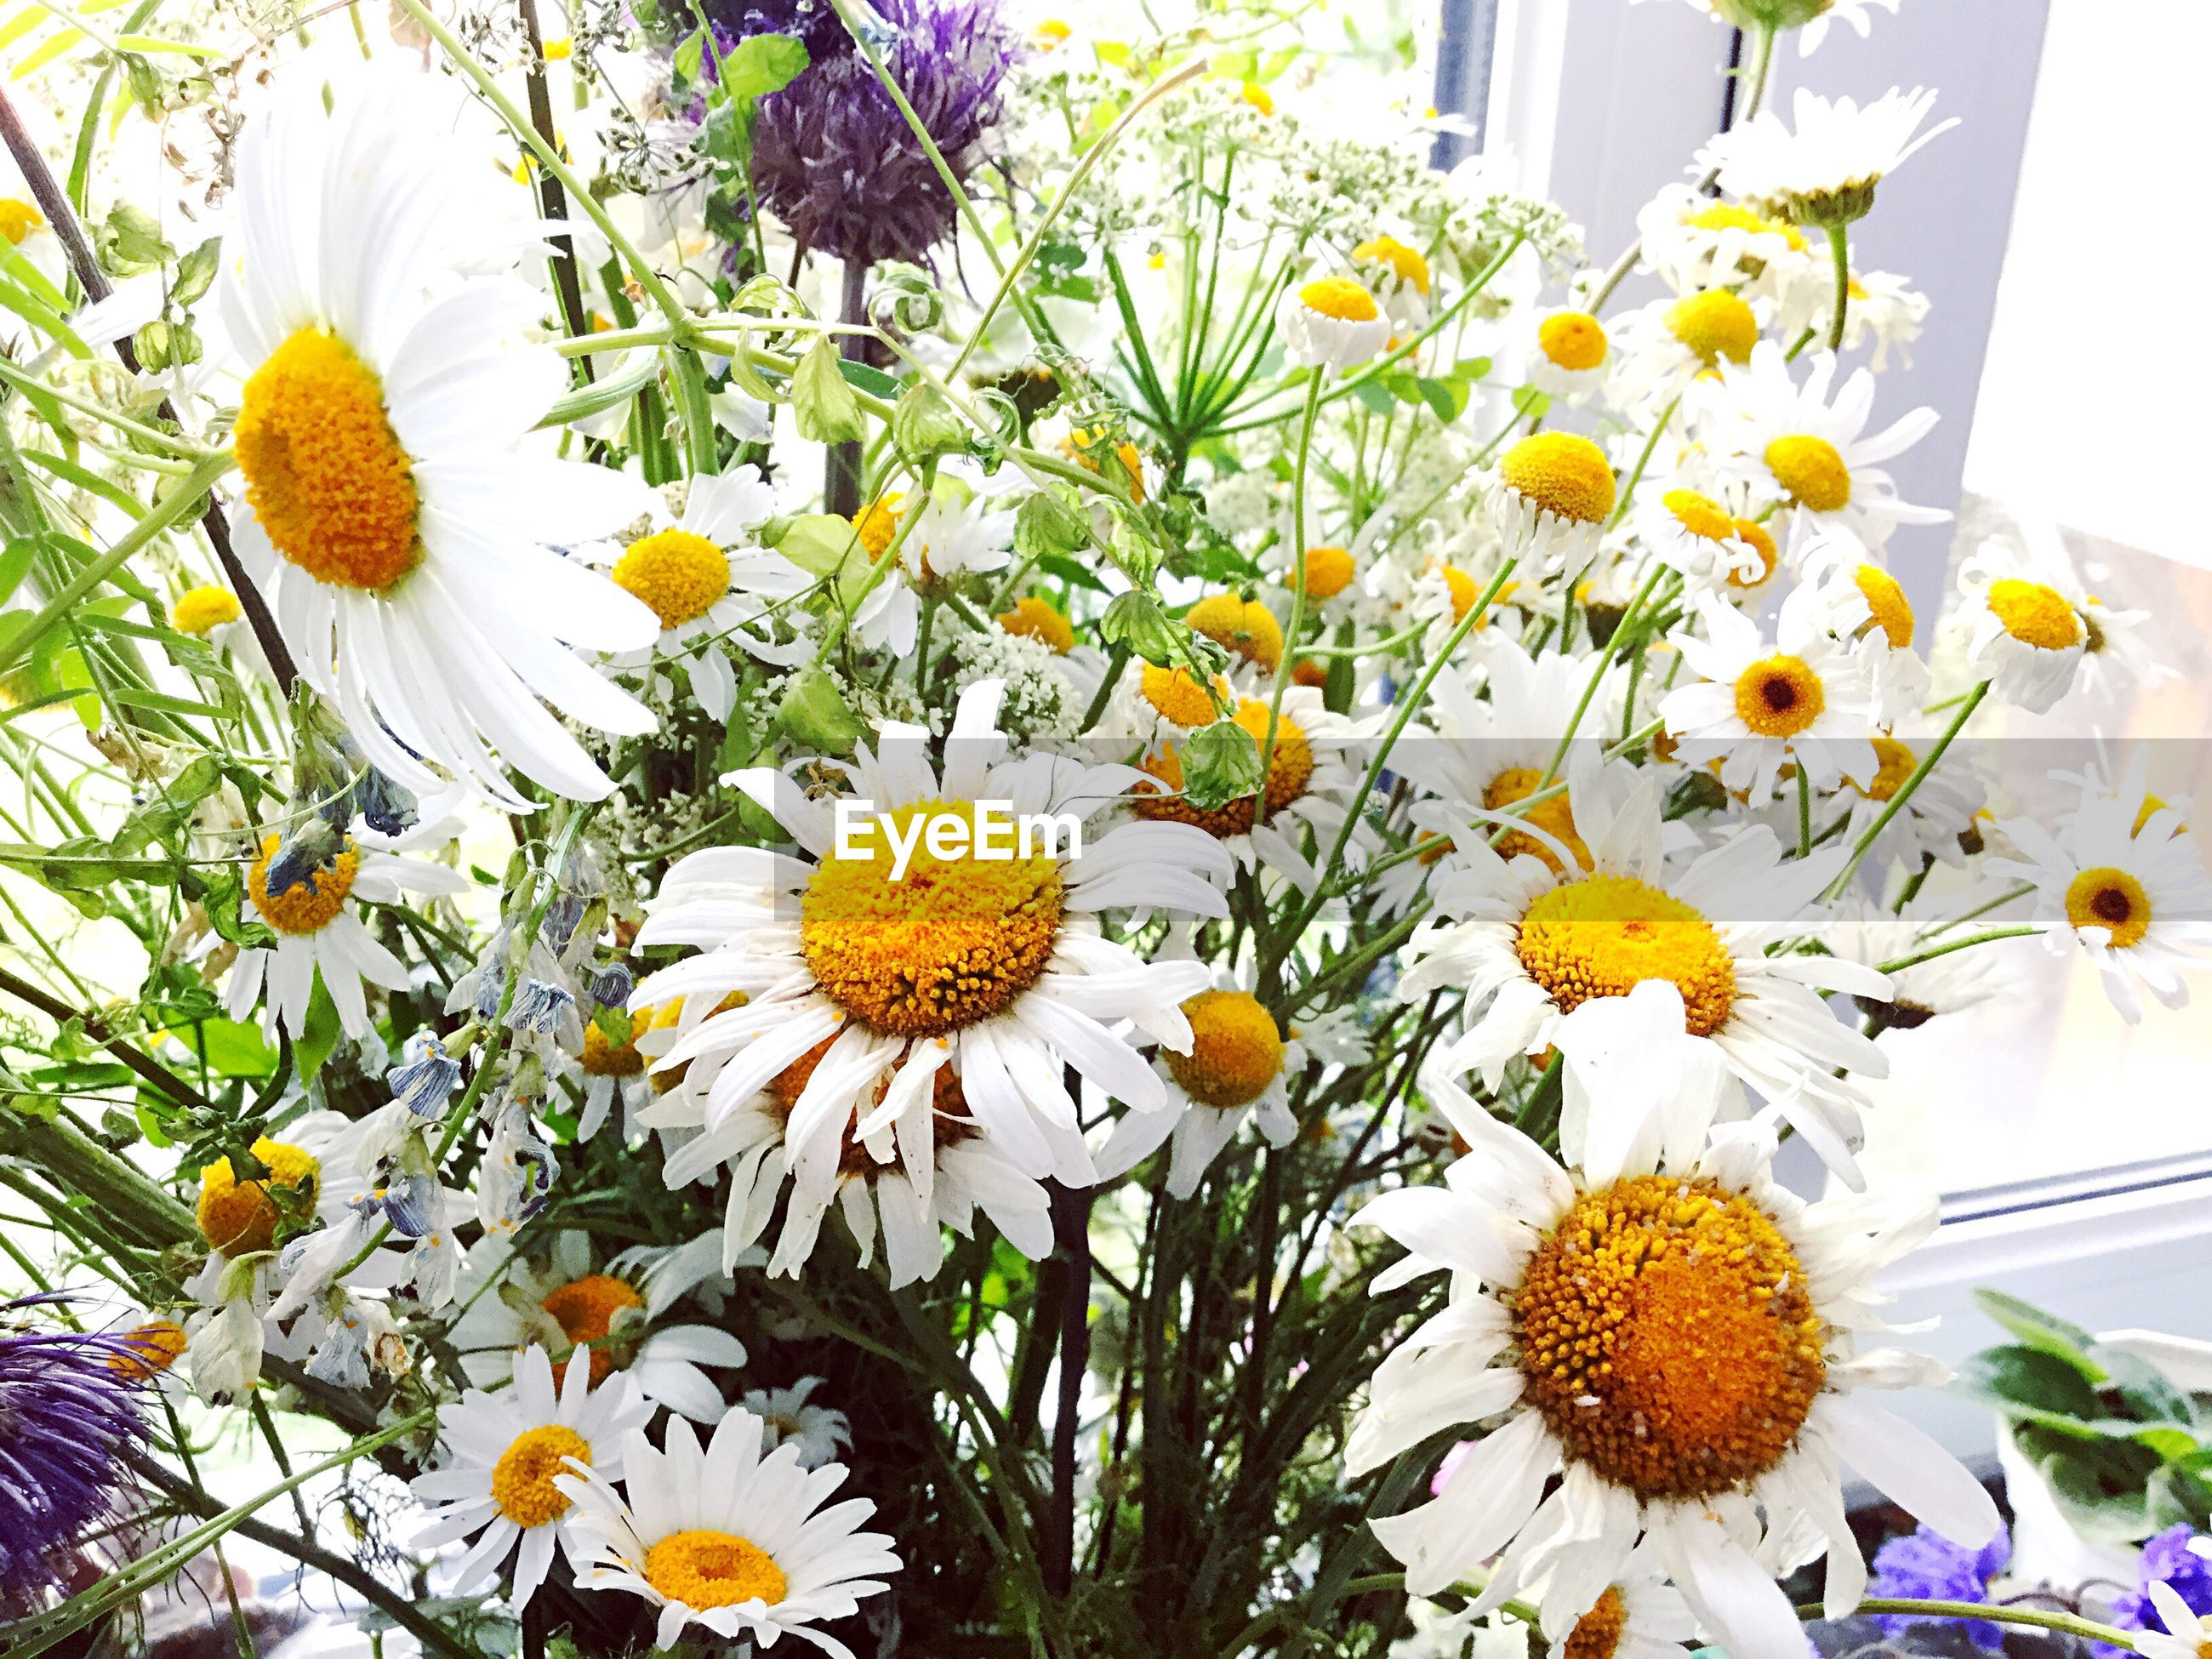 flower, freshness, fragility, petal, yellow, growth, flower head, beauty in nature, close-up, nature, plant, daisy, springtime, day, in bloom, blossom, botany, pollen, outdoors, abundance, vibrant color, bloom, blooming, multi colored, no people, daisies, full frame